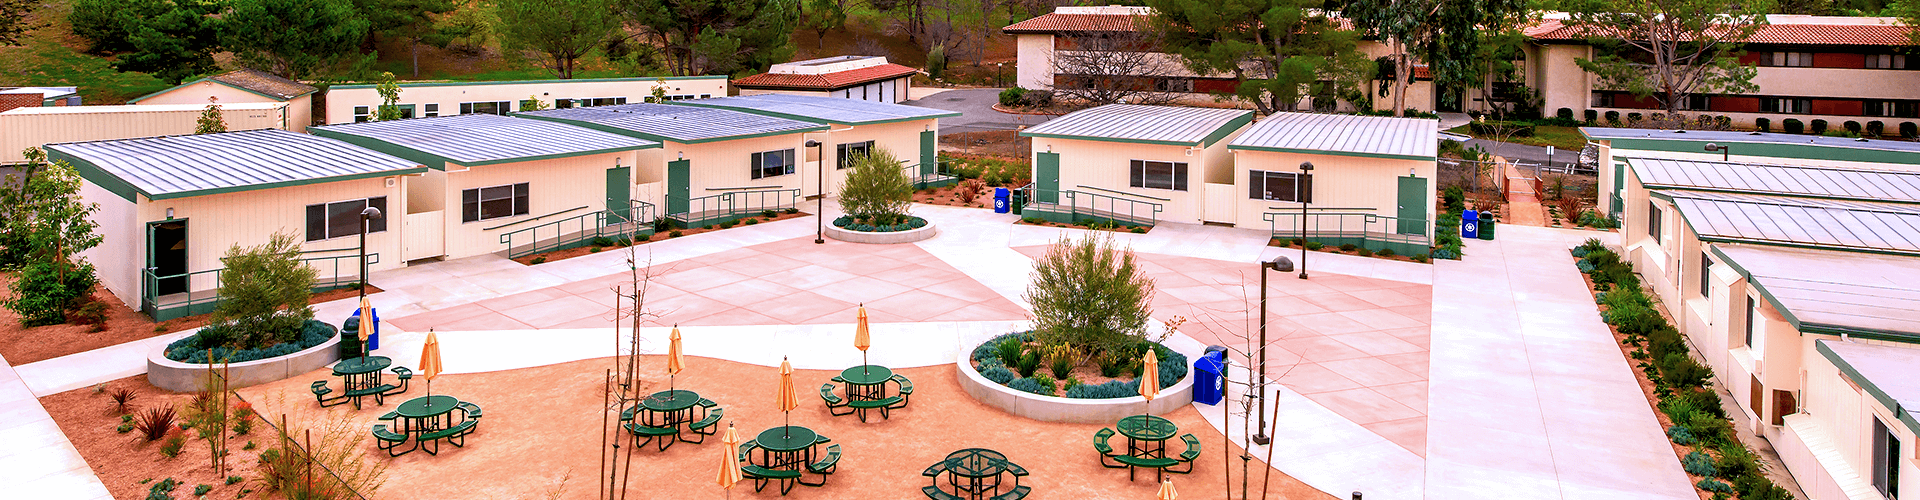 Modular Classroom Rental ~ Portable classrooms and modular school buildings for rent